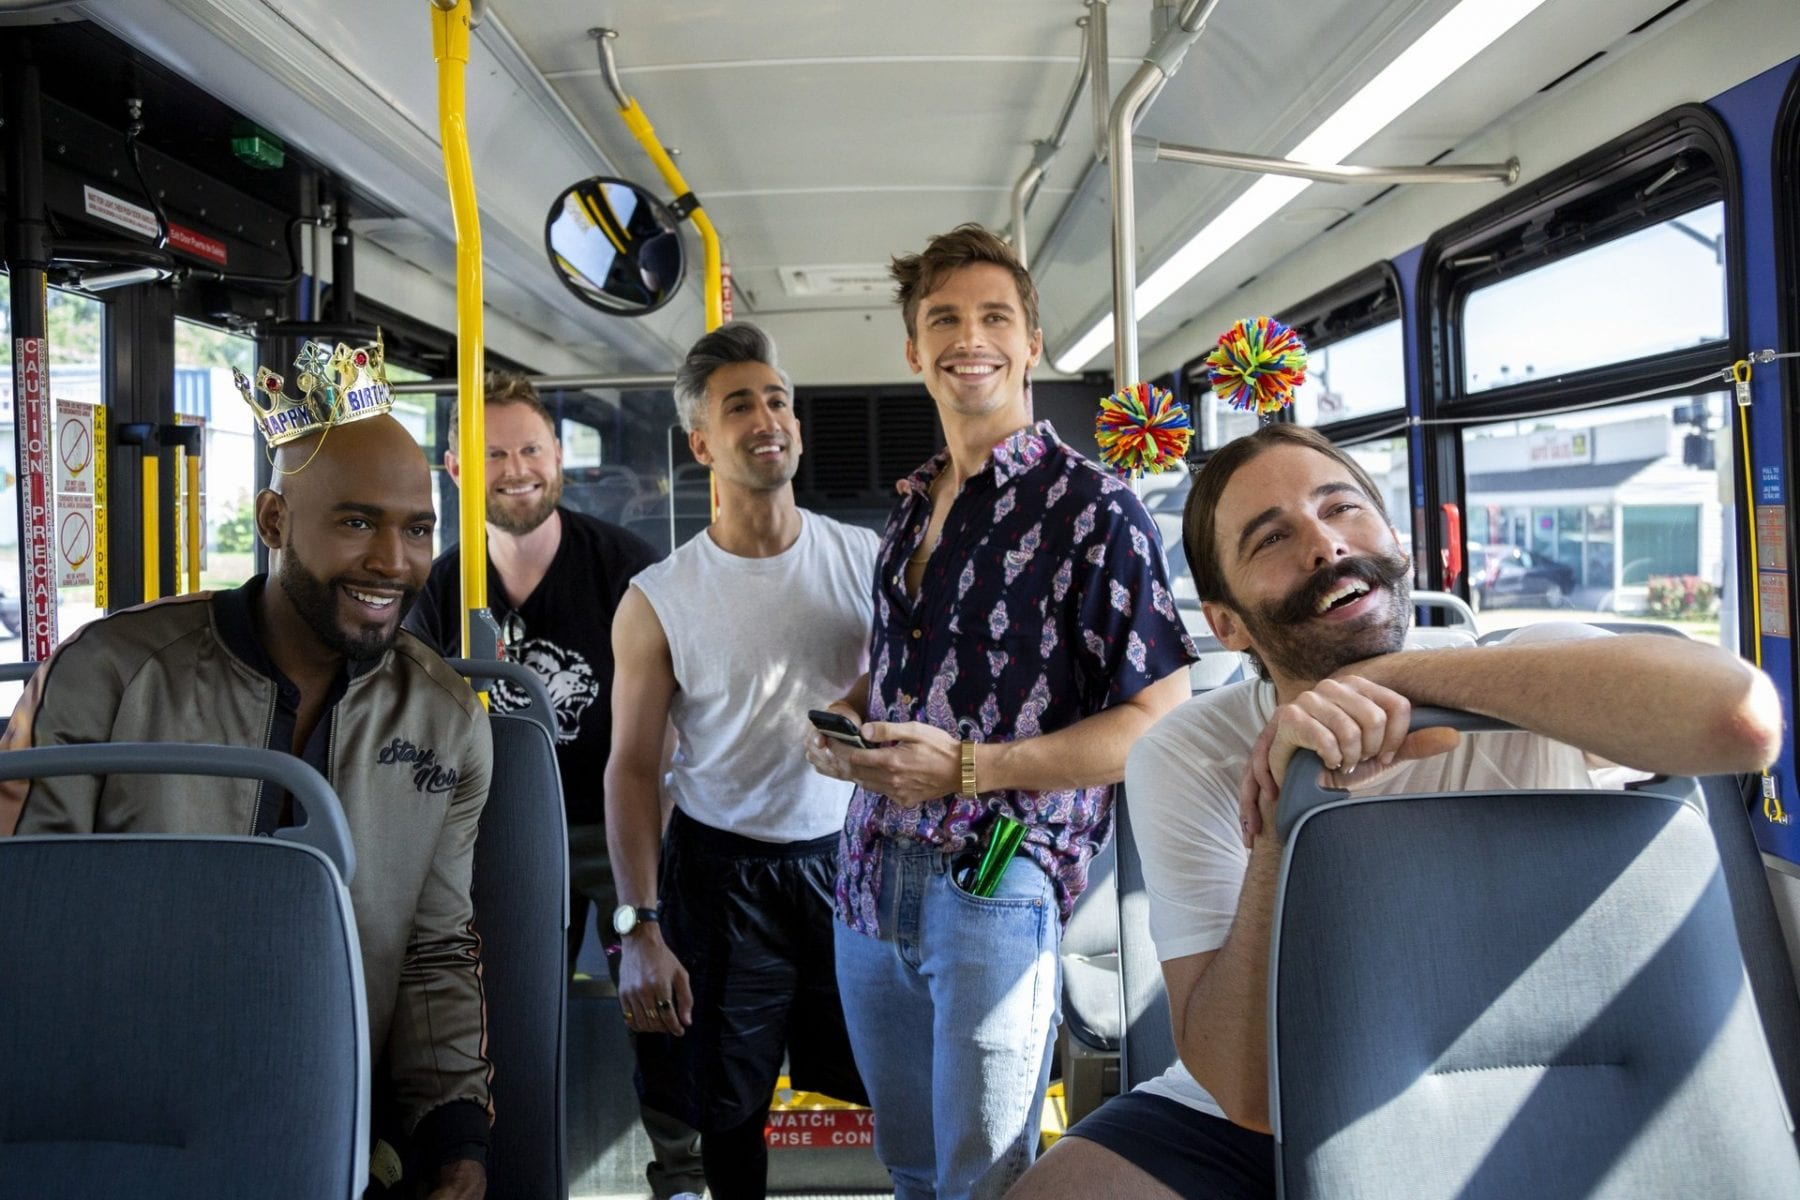 Karamo, Bobby, Tan, Antoni, and JVN on a bus in an episode of Queer Eye